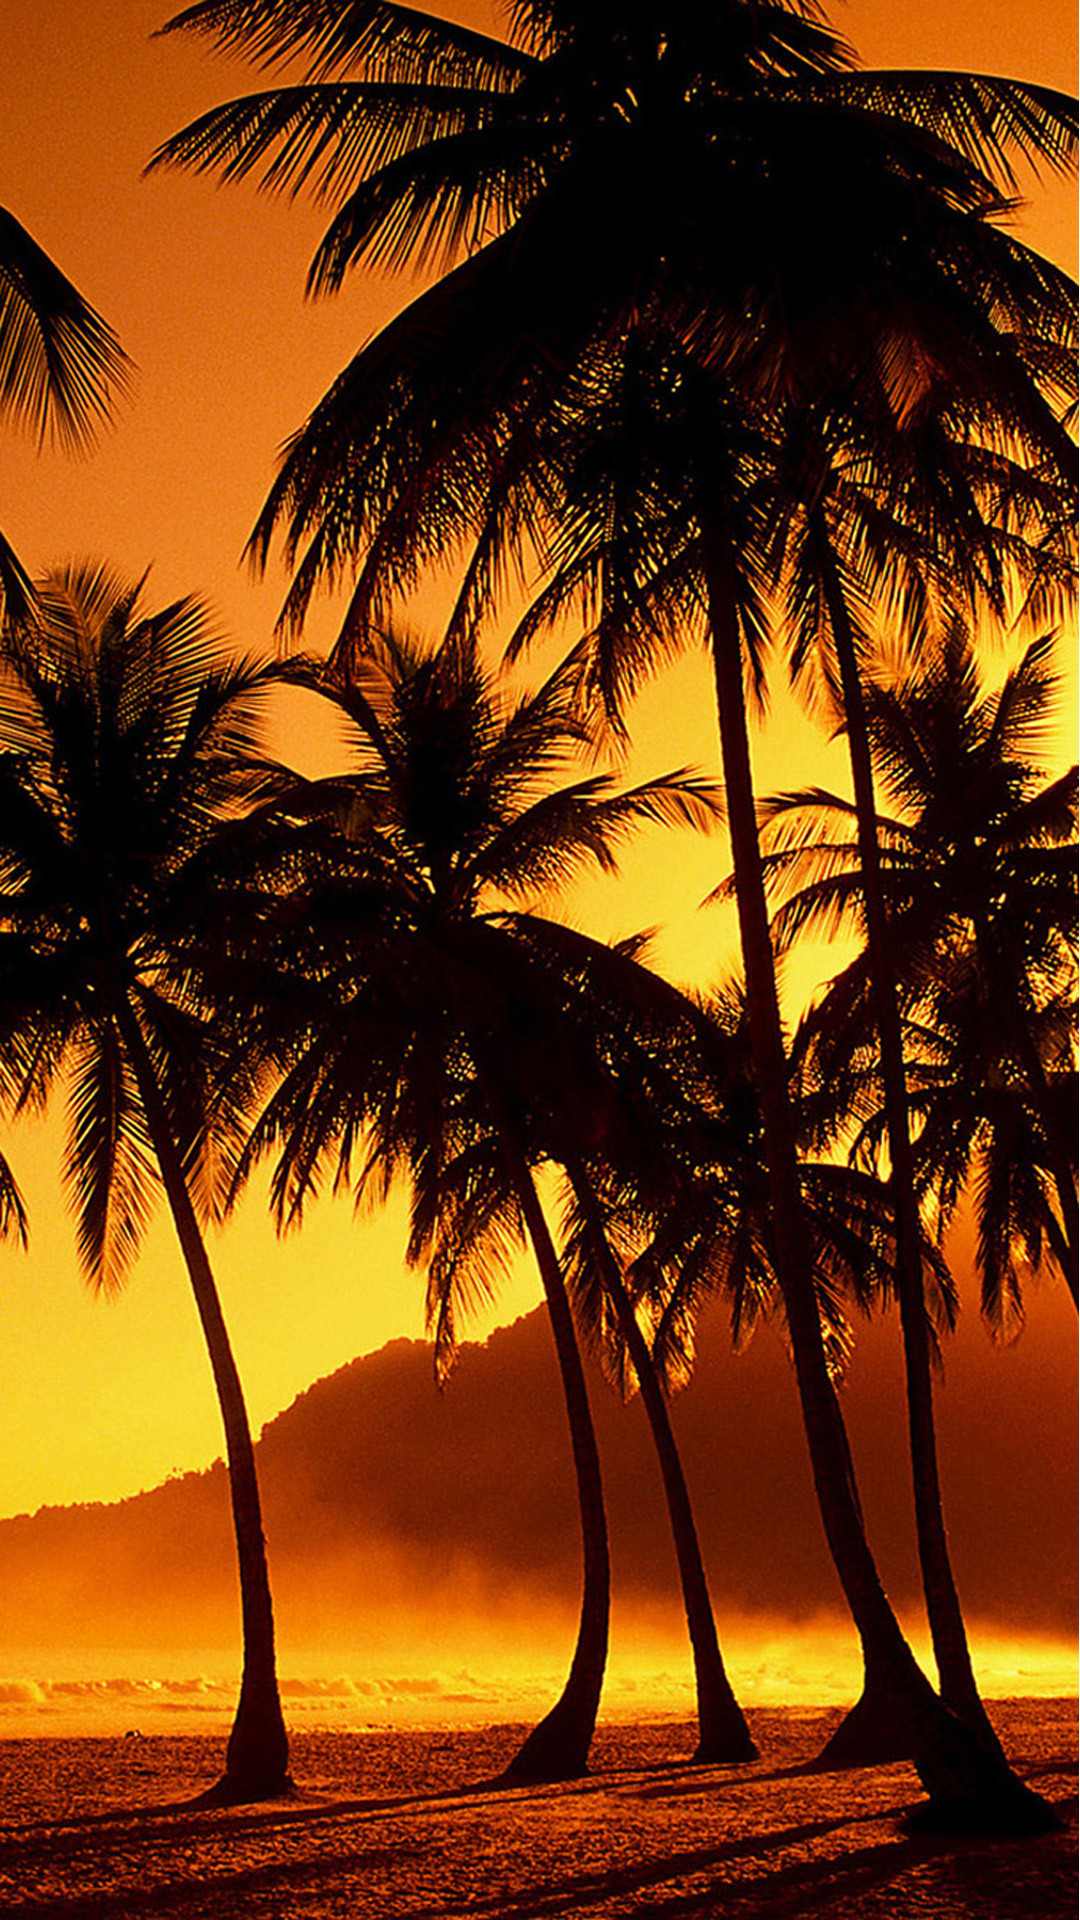 Palm Tree Sunset Wallpaper (70+ images)